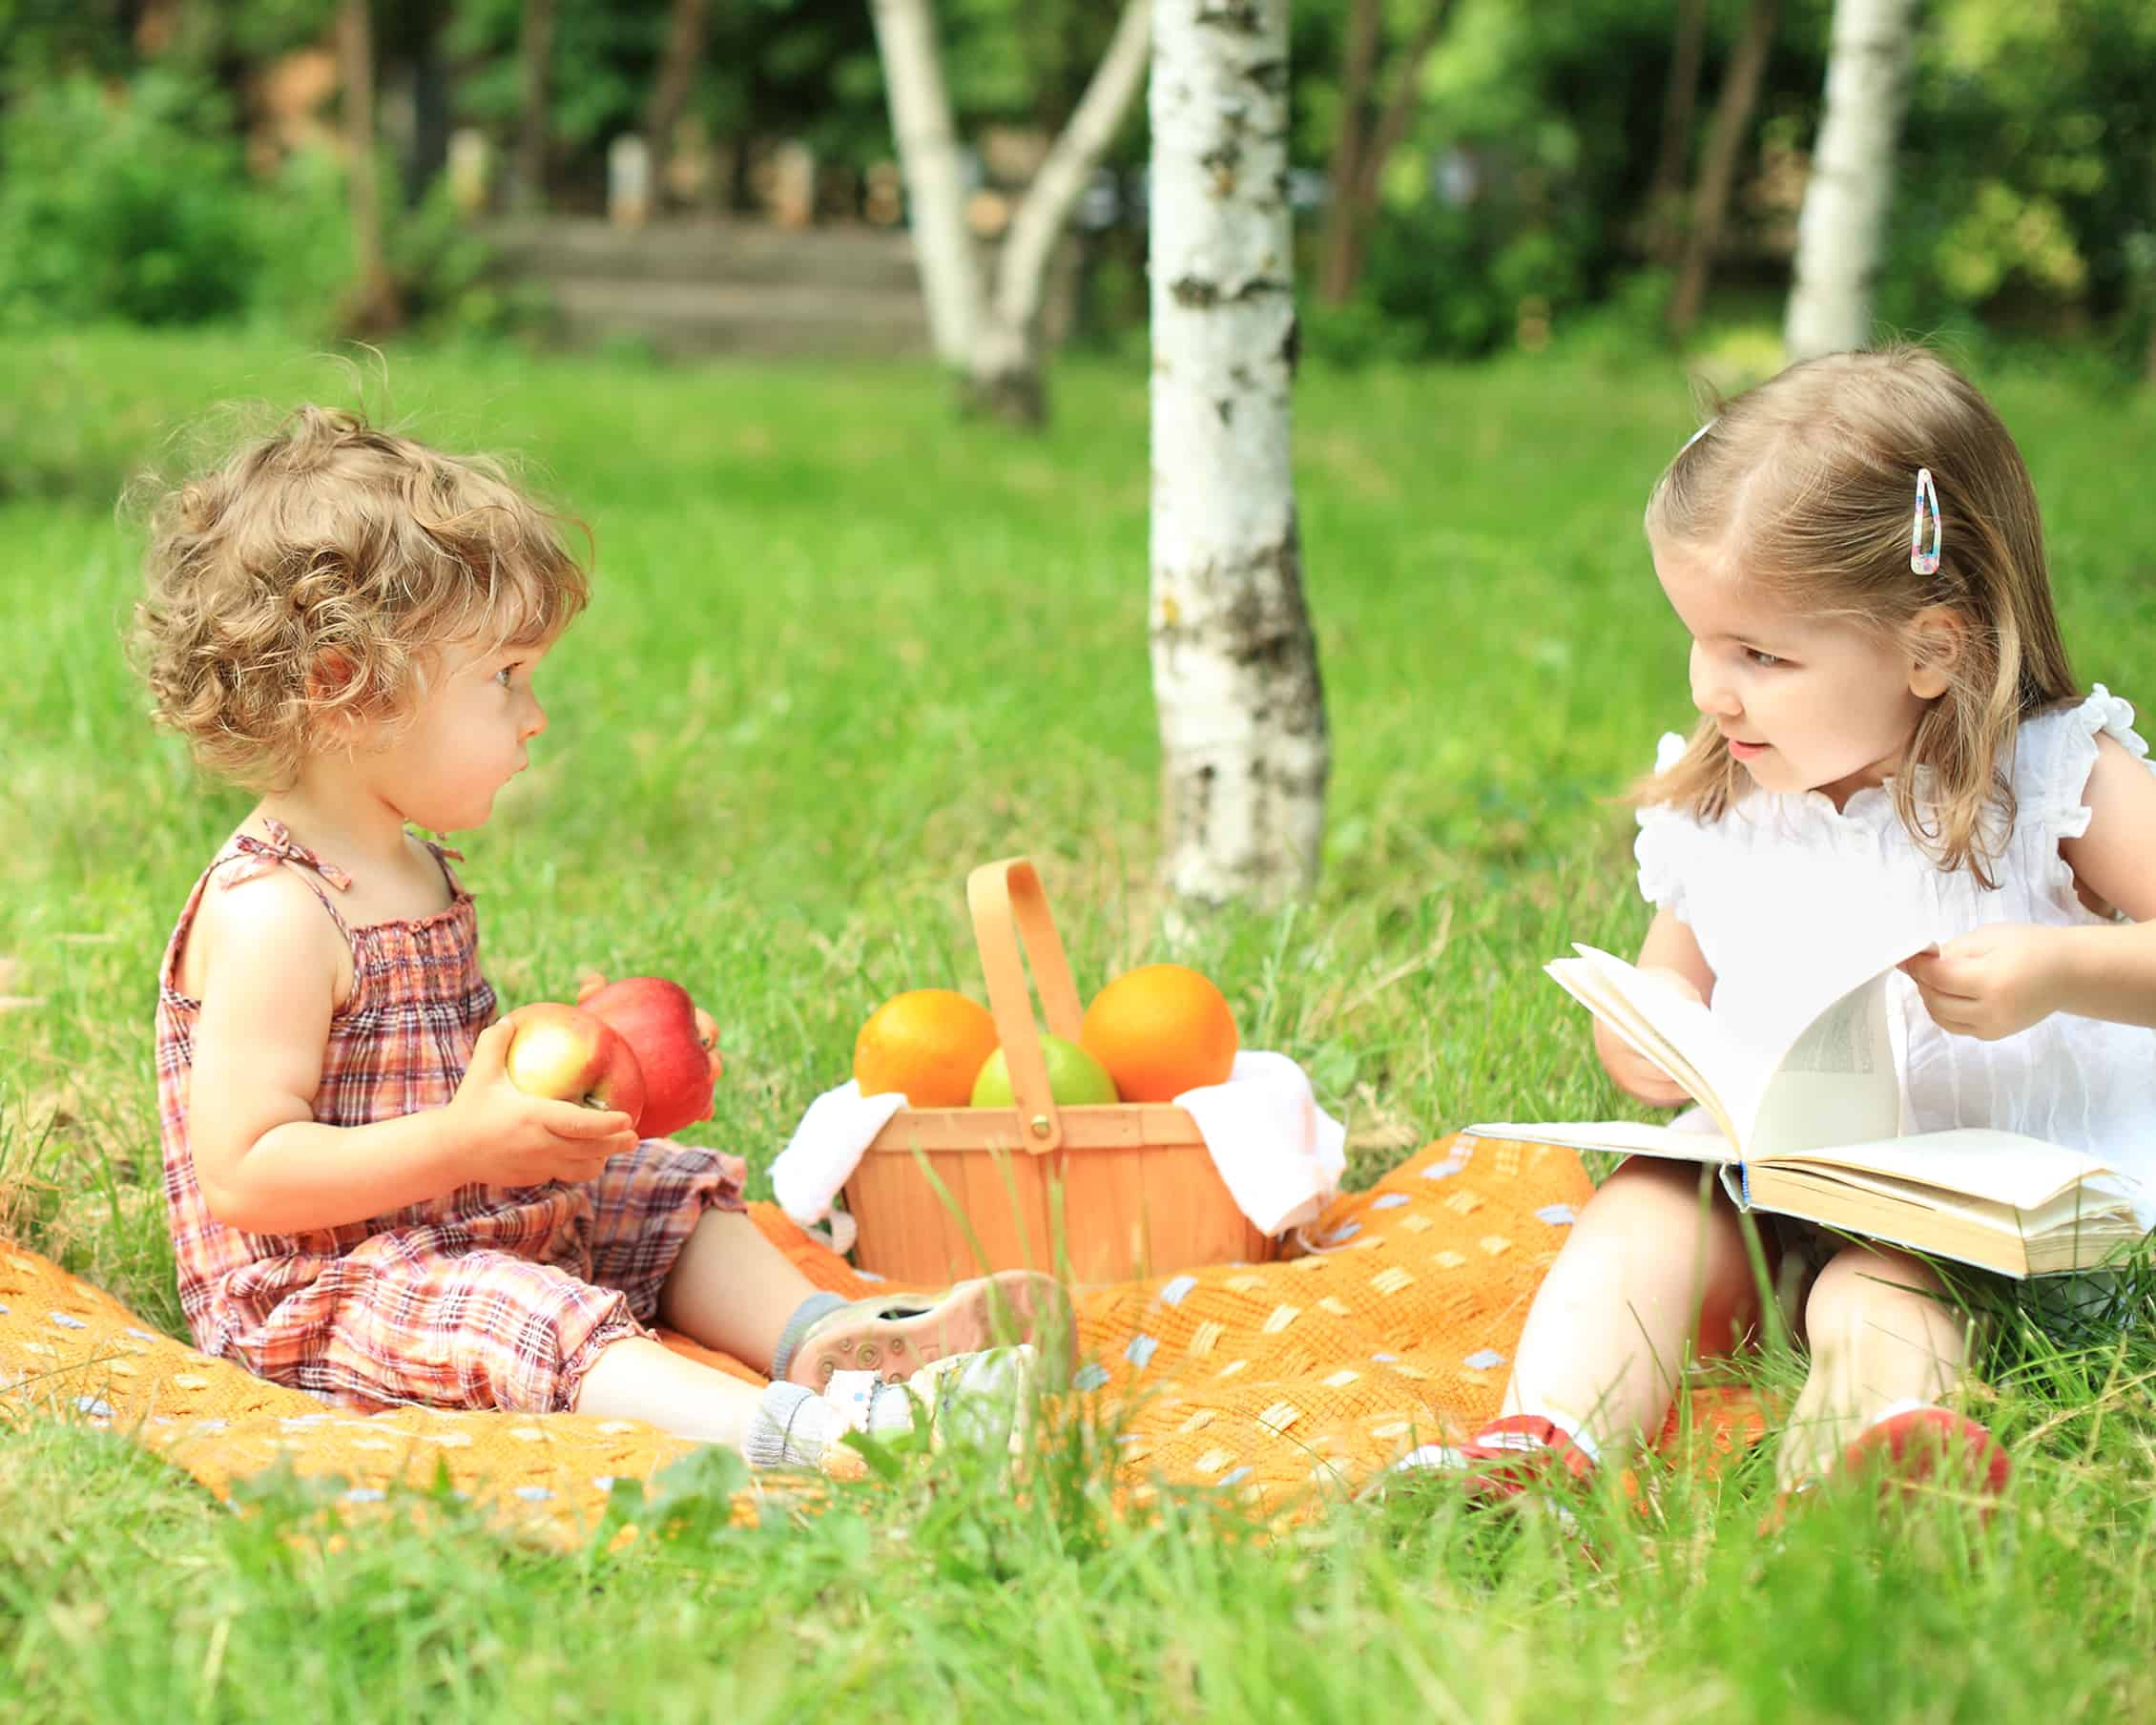 Picnic – activities for kids